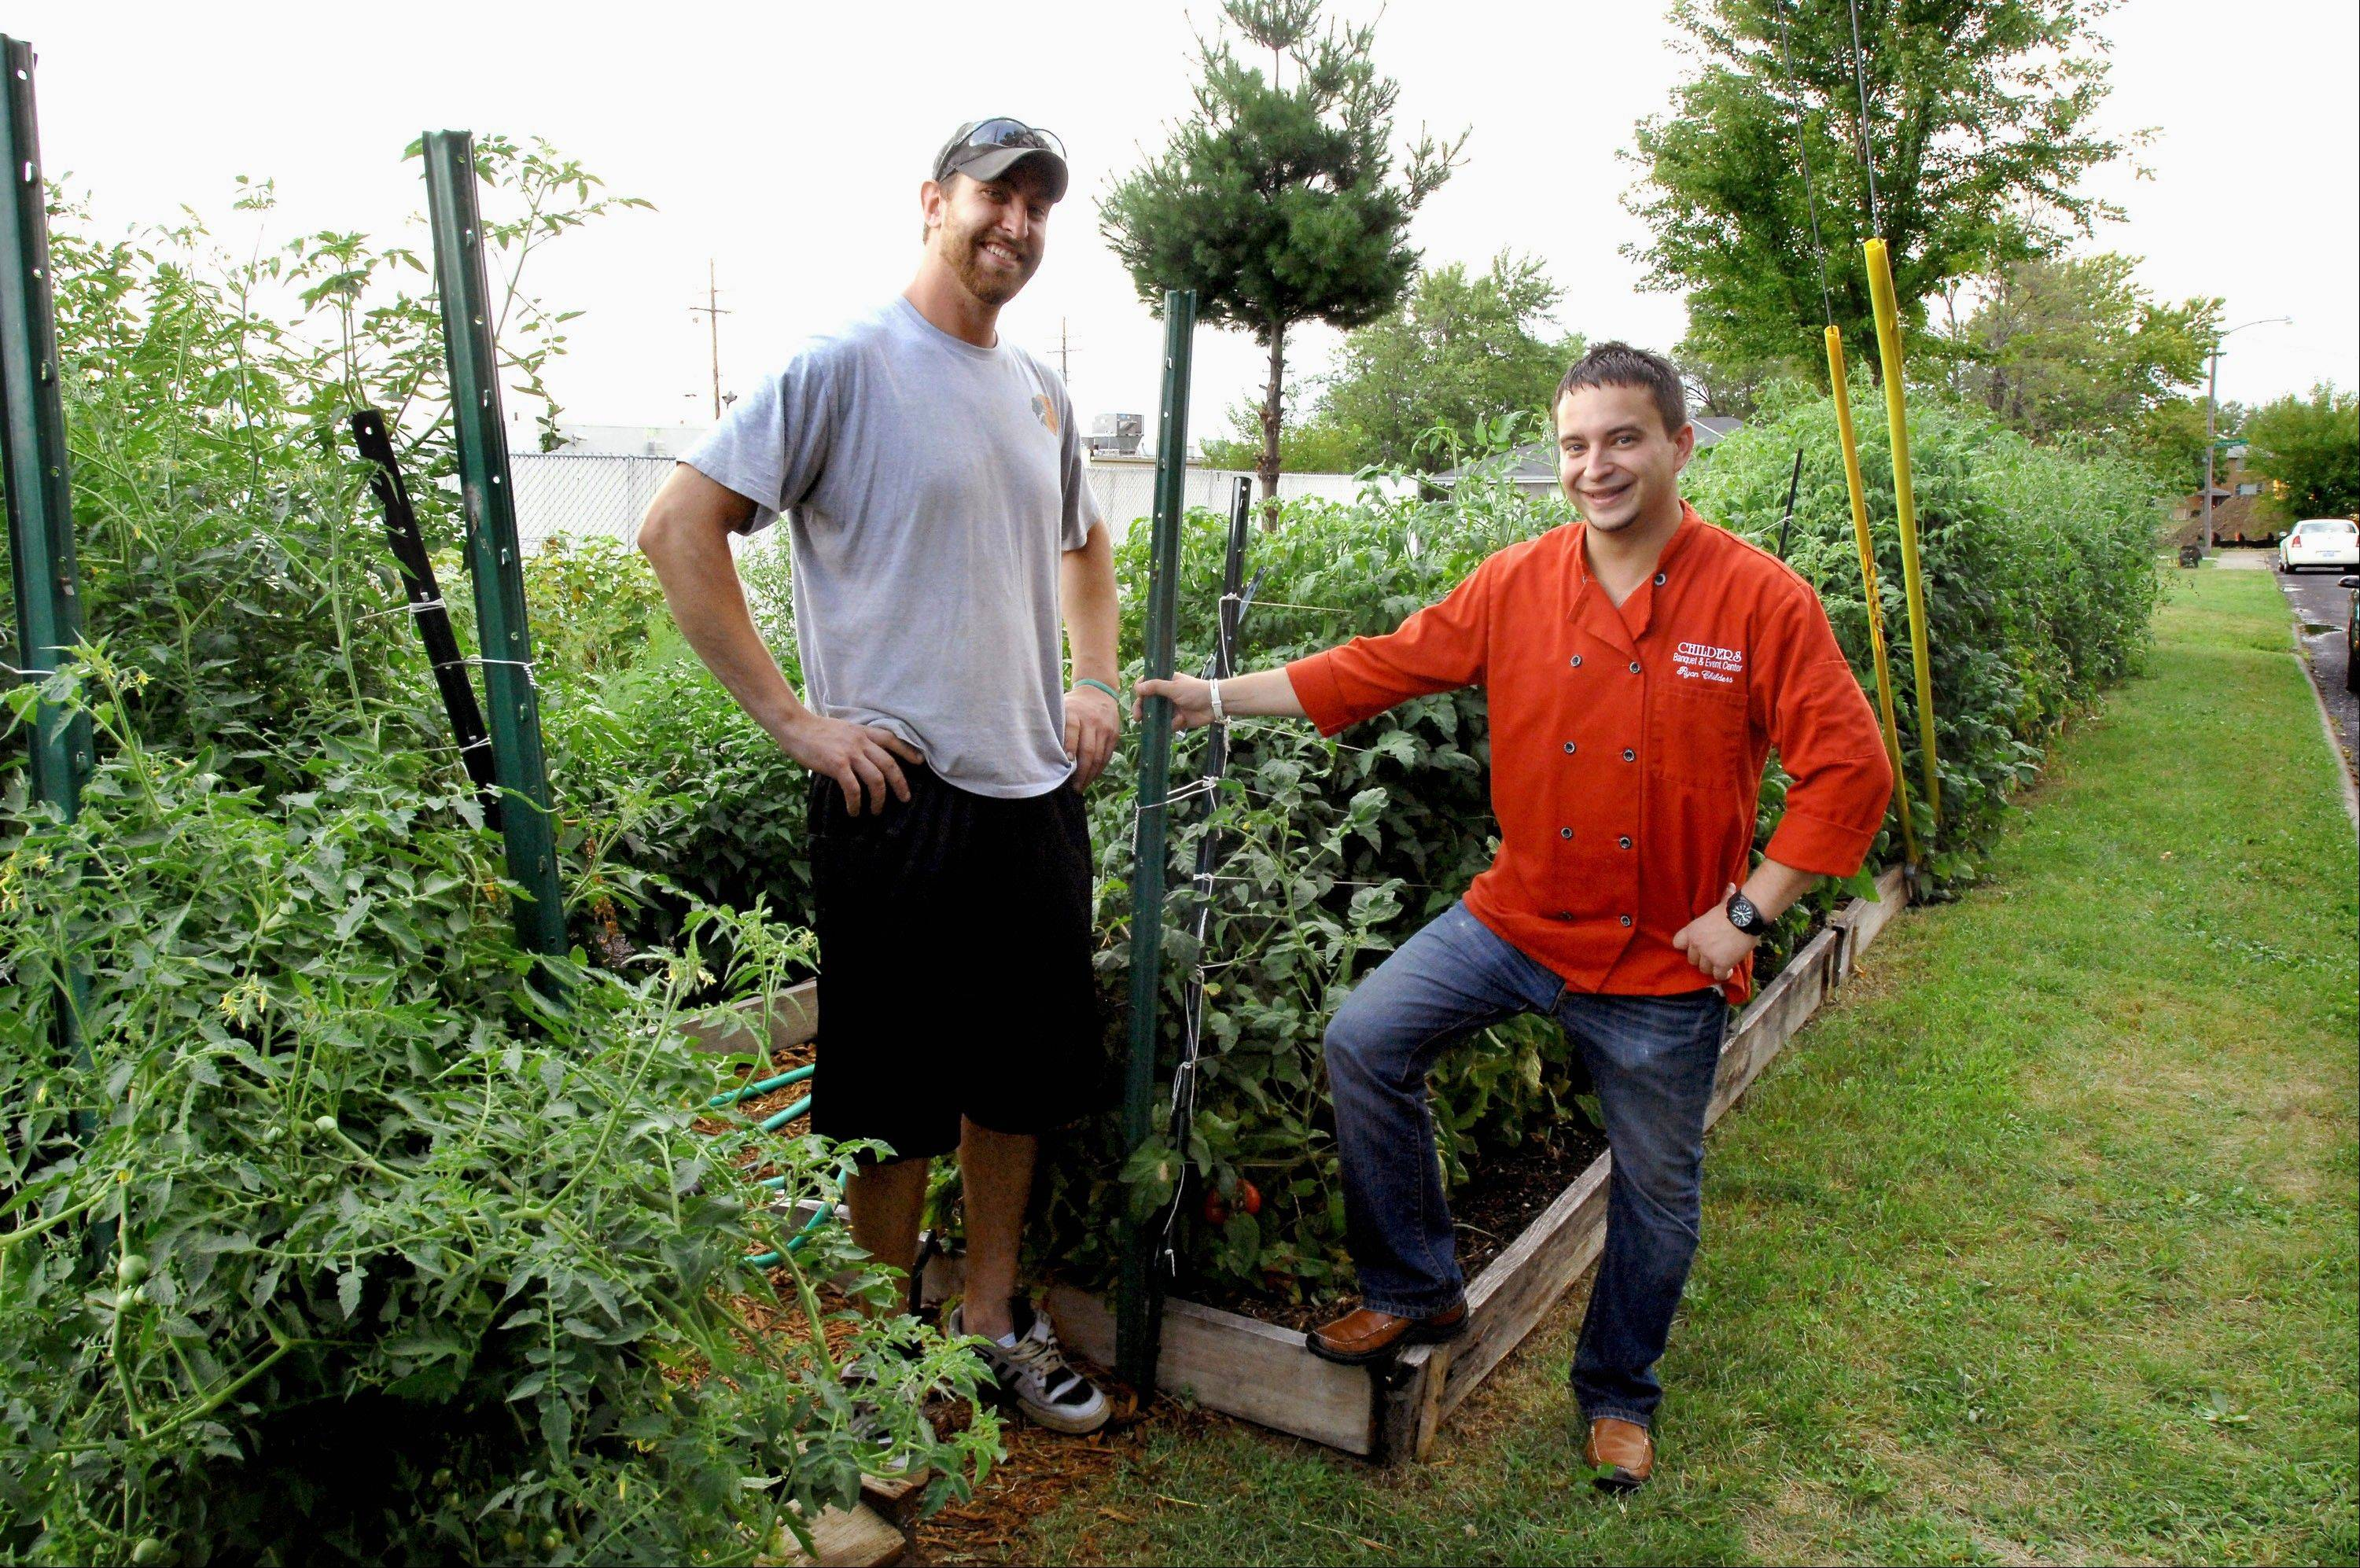 Michael Hobin, left, and Ryan Childers, right, stand beside the 1,500-square-foot organic vegetable garden they planted behind Childers Eatery in Peoria this spring. Until this year, Childers and Hobin knew very little about gardening.